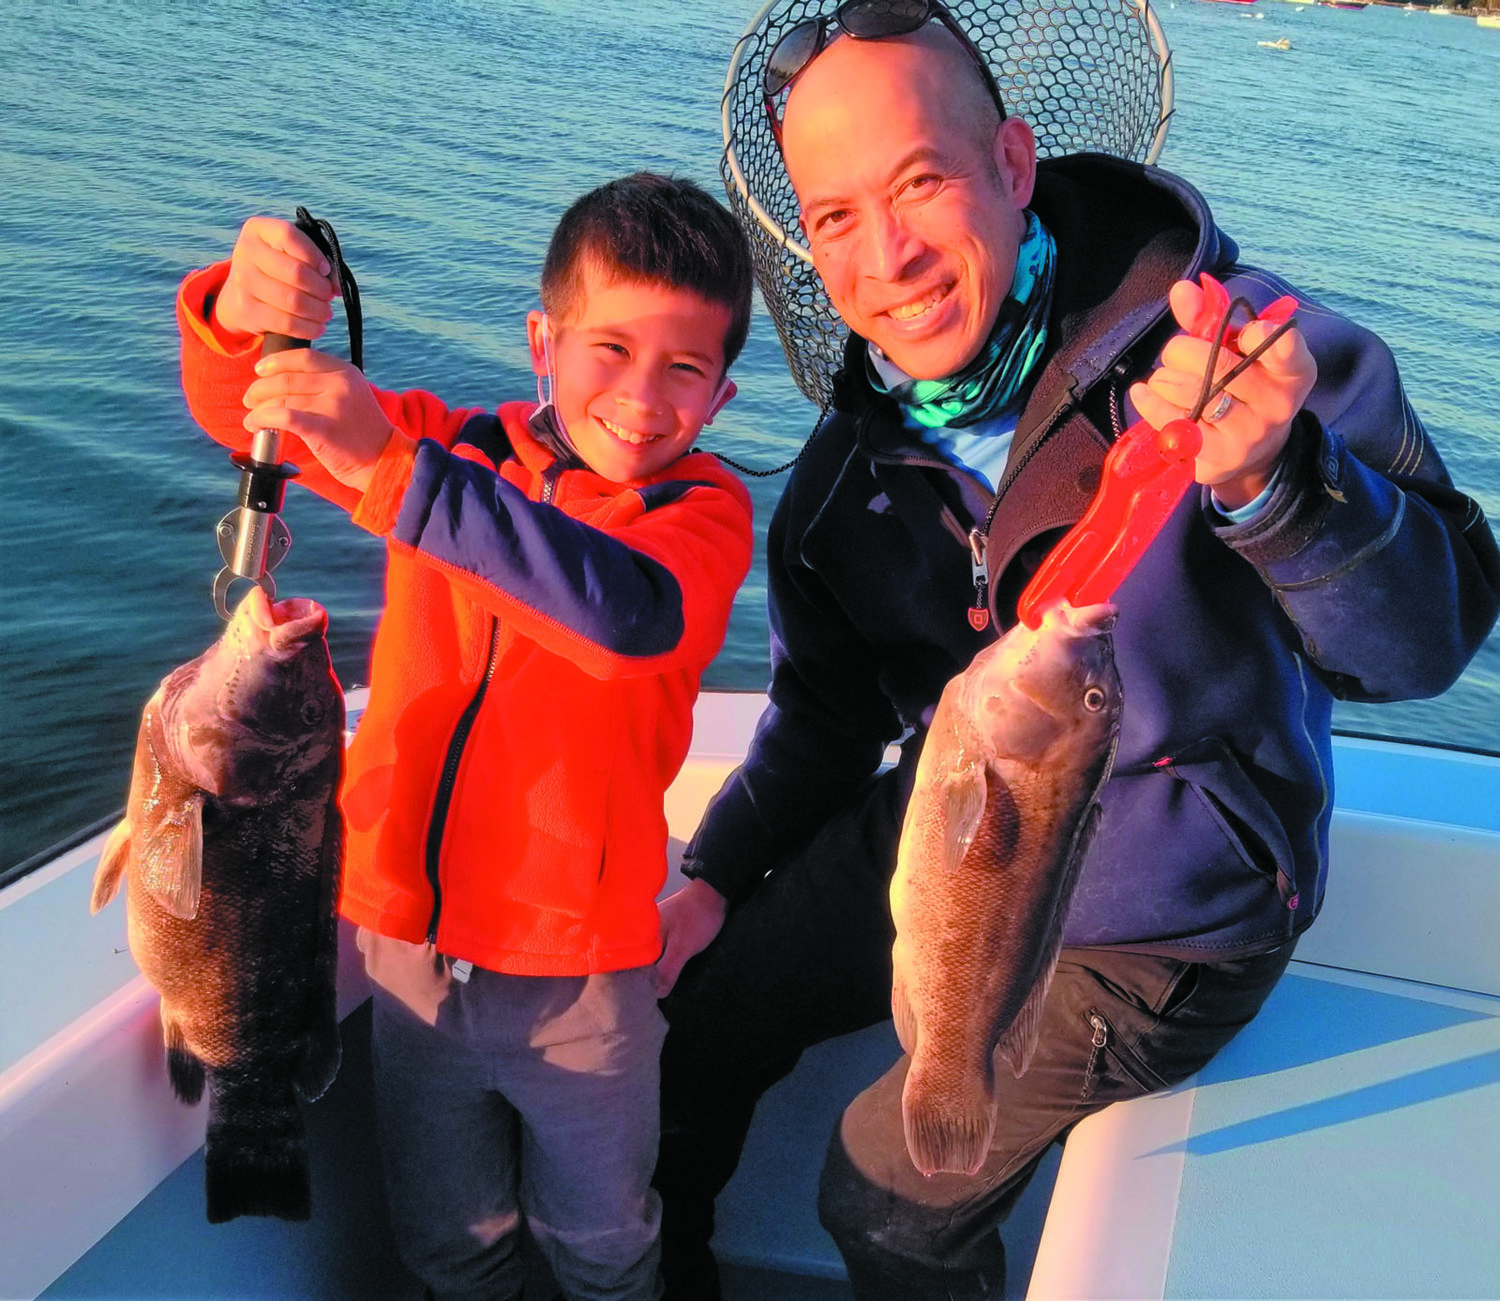 PERSONAL BEST: Xavier Wong with his personal best eight pound tautog that he caught off Newport this week. He and his father Jamie limited out with ten fish in about 3.5 hours of fishing.